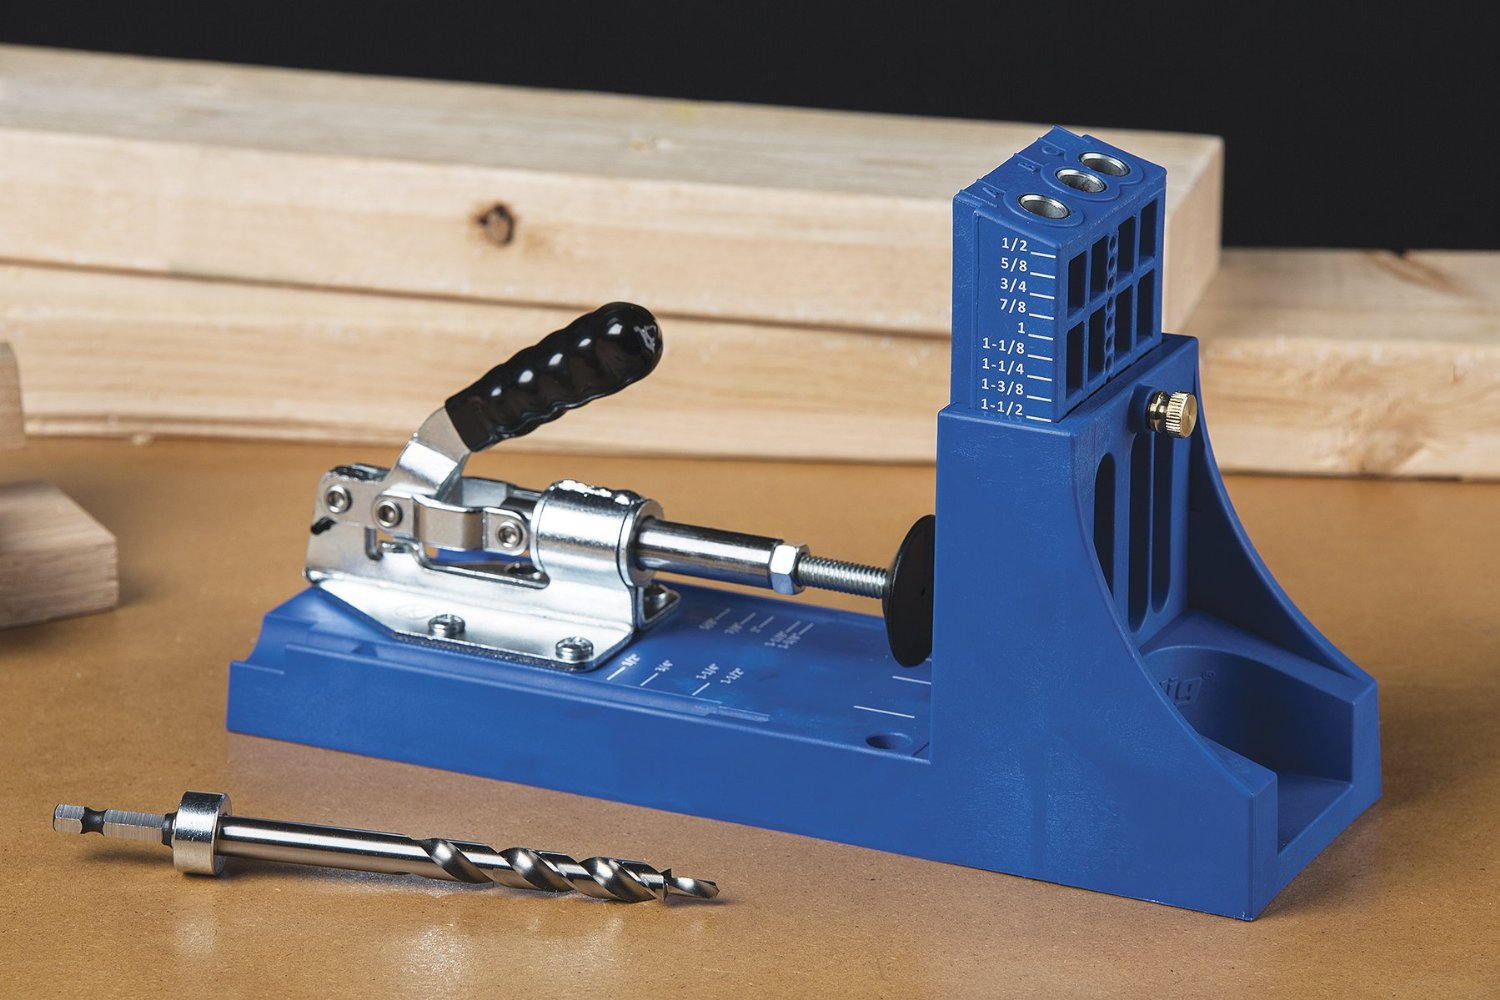 What To Consider Before Buying A Pocket Hole Jig